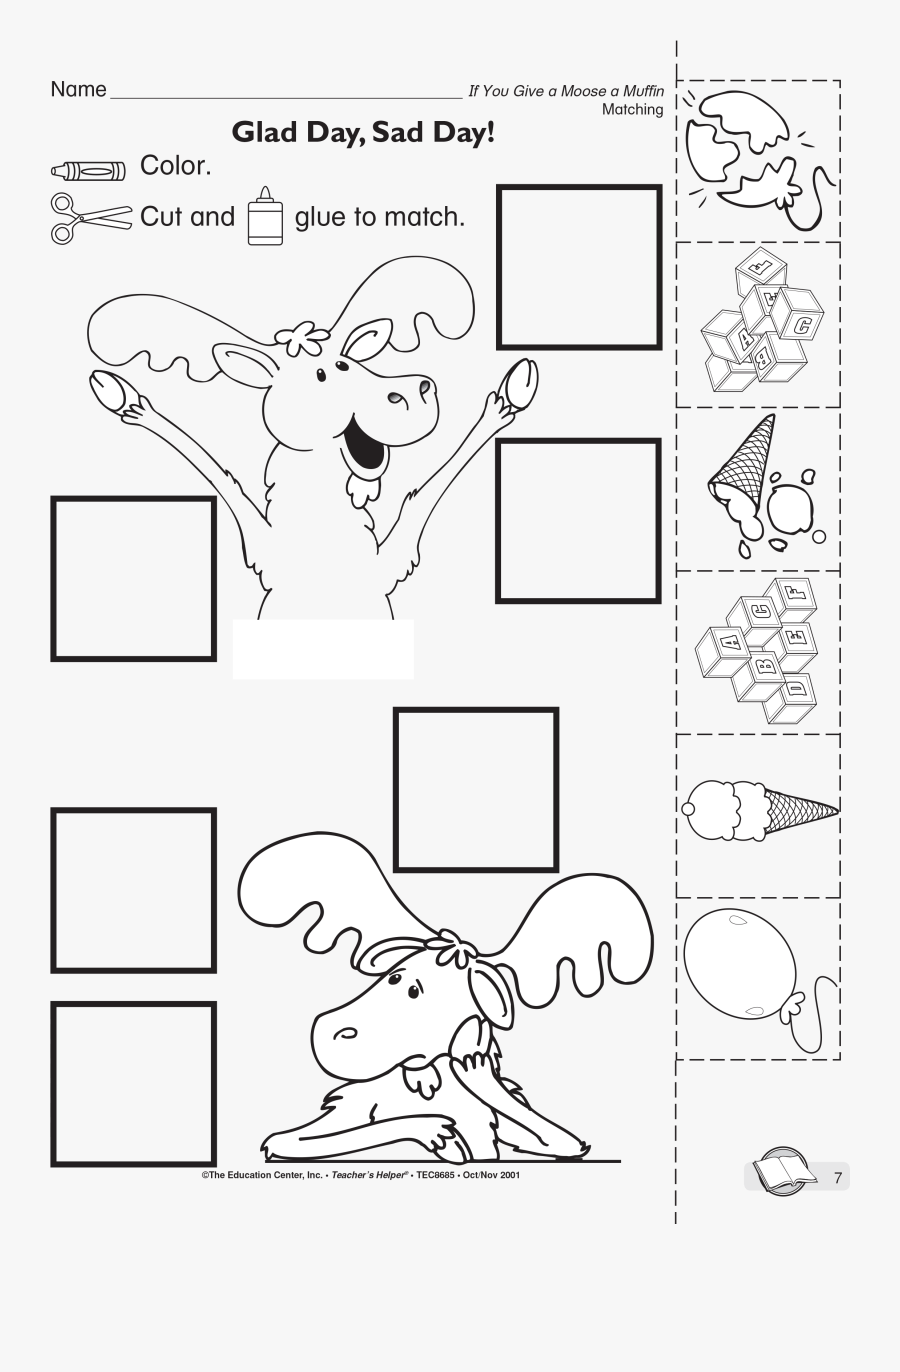 If You Give A Moose A Muffin Printable Sequencing Cards, Transparent Clipart